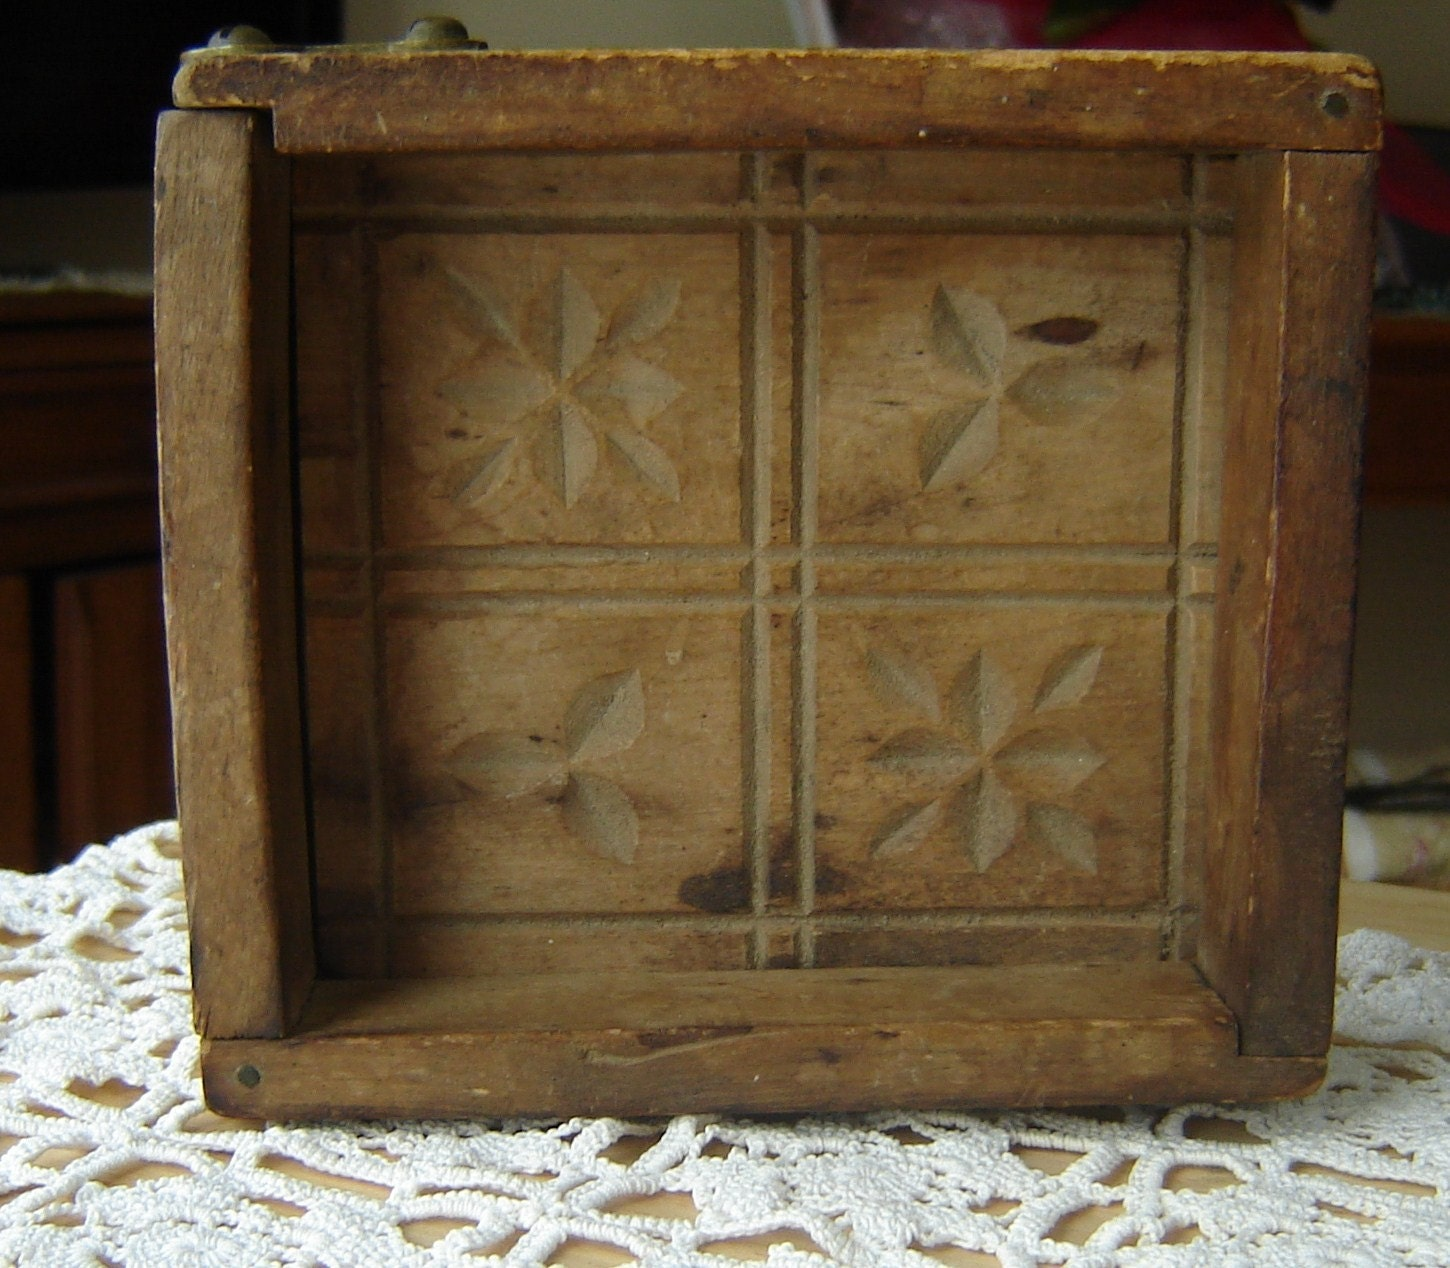 Antique wooden butter mold in box by vintageschoolhouse